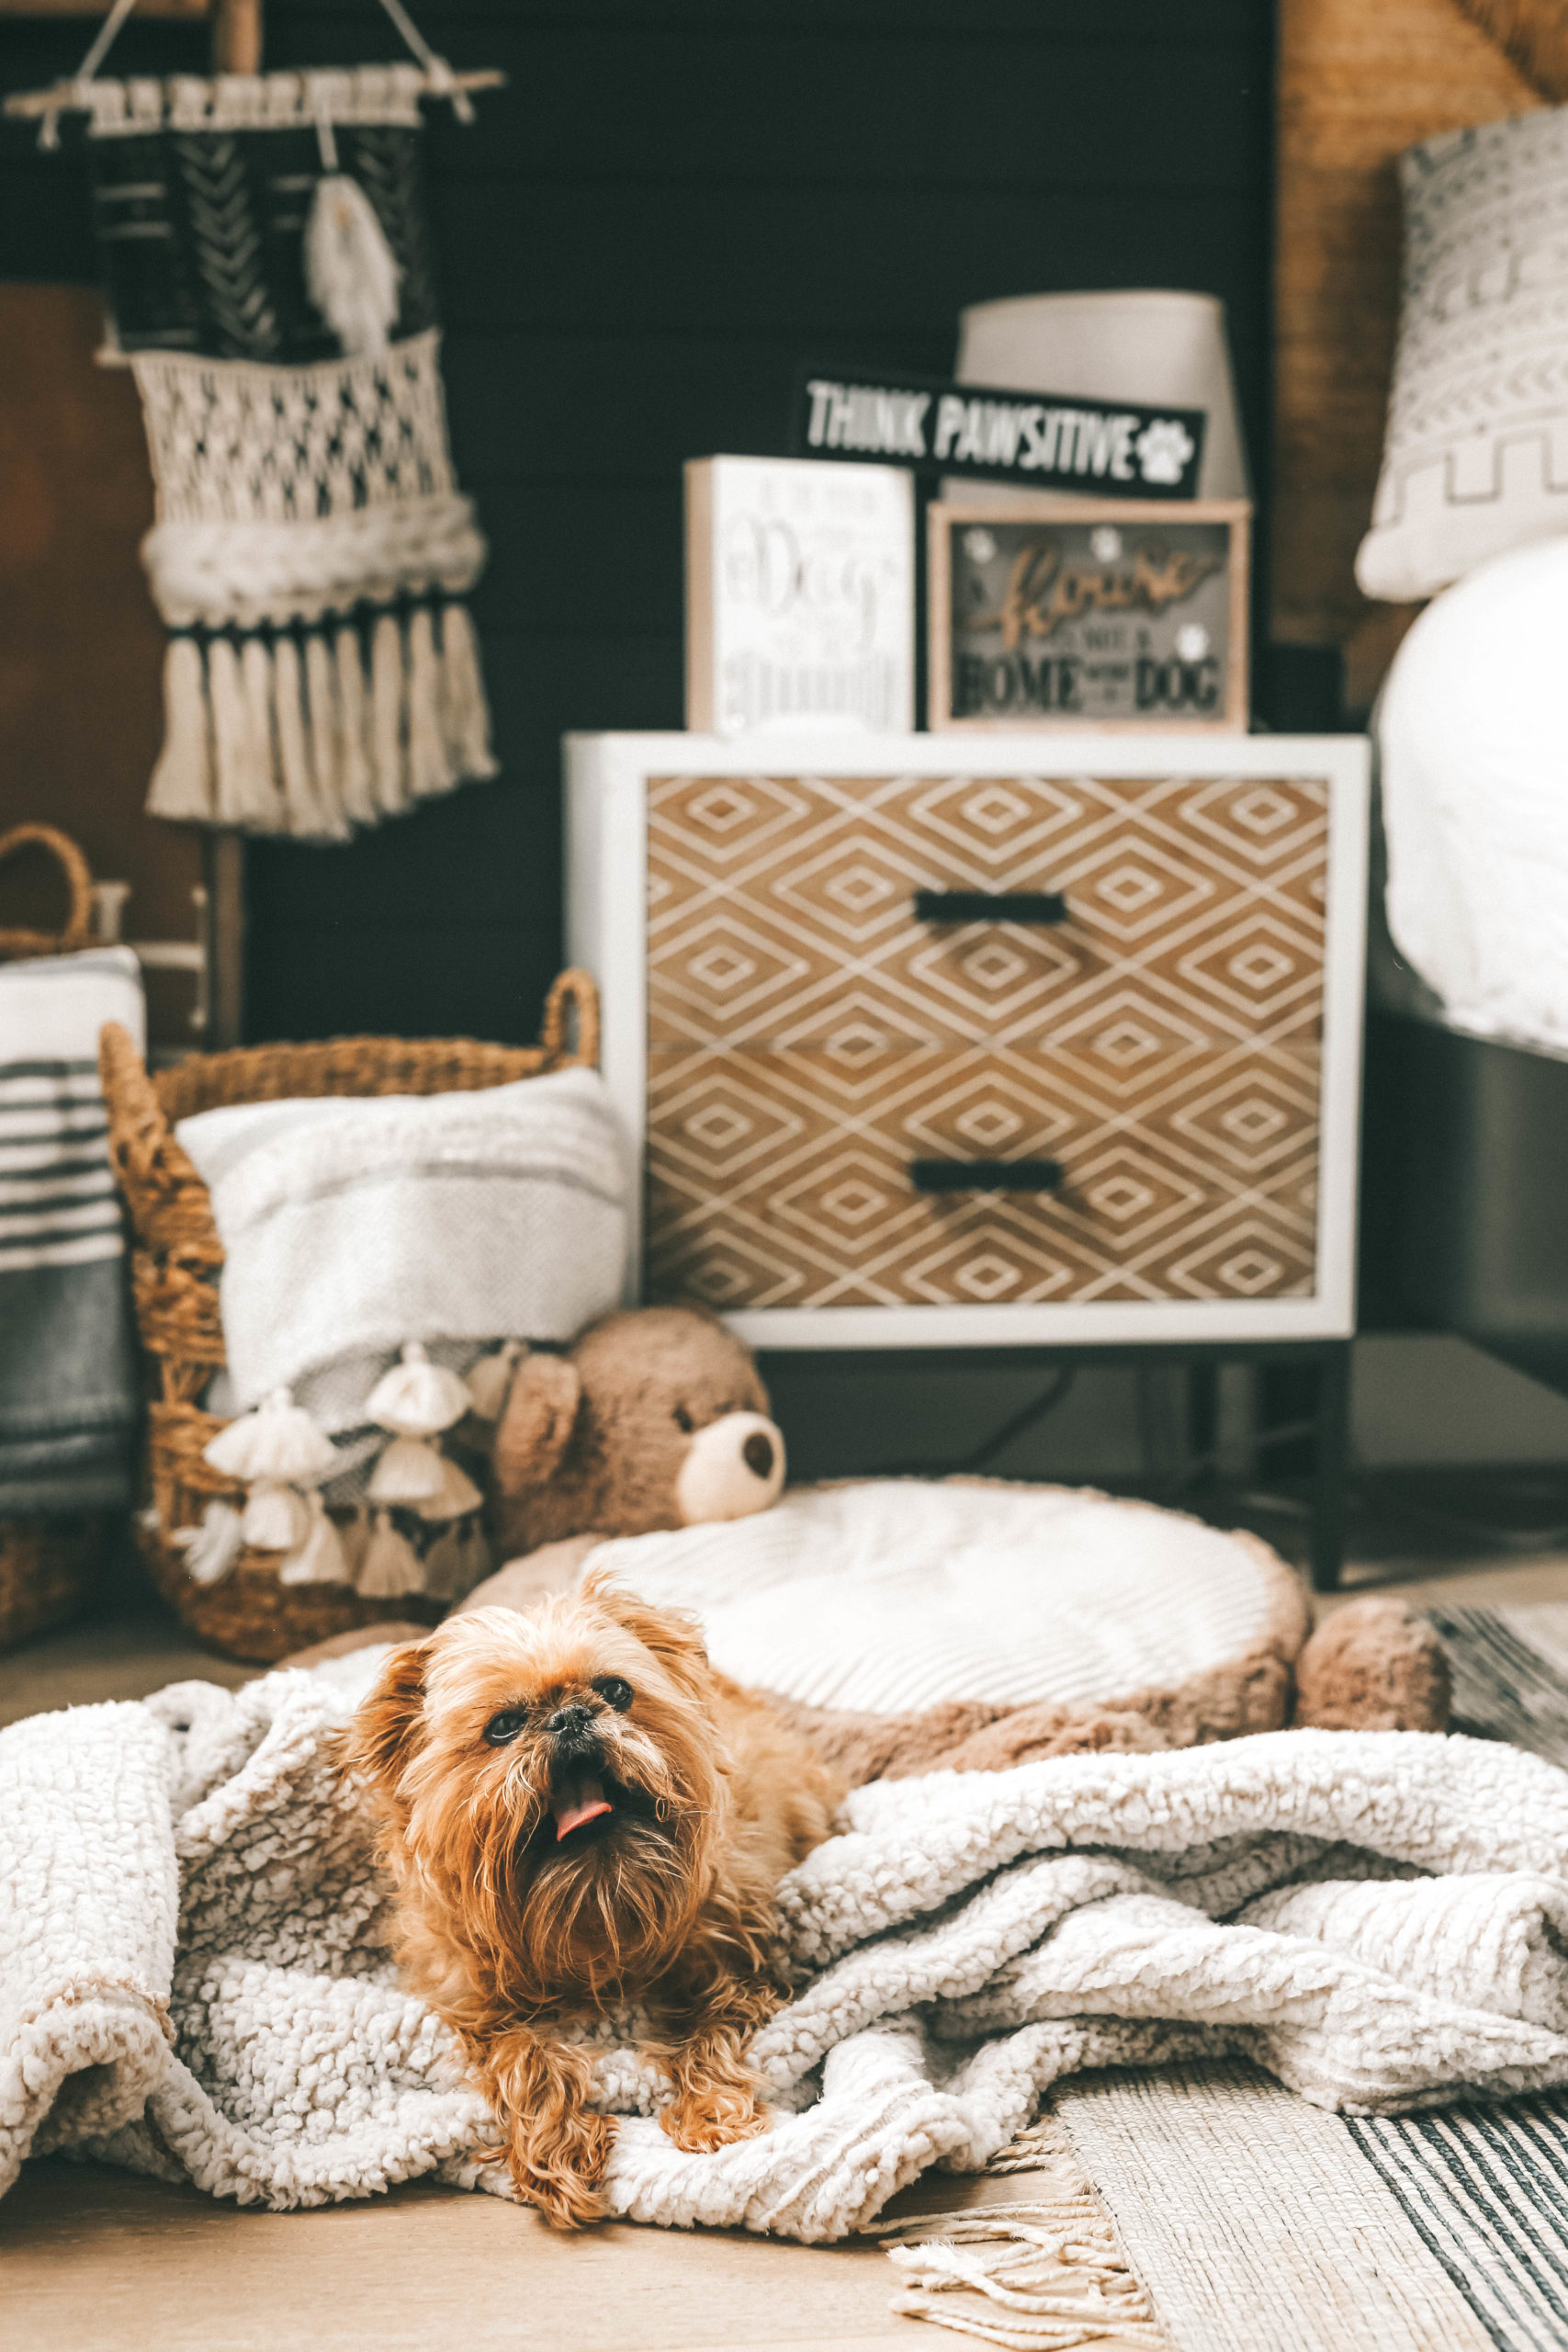 How to Pamper Your Pet by popular Nashville life and style blog, Dressed to Kill: image of a dog wearing a stripped outfit and sitting bear shaped dog bed that's next to some various dog signs from Tuesday Morning.